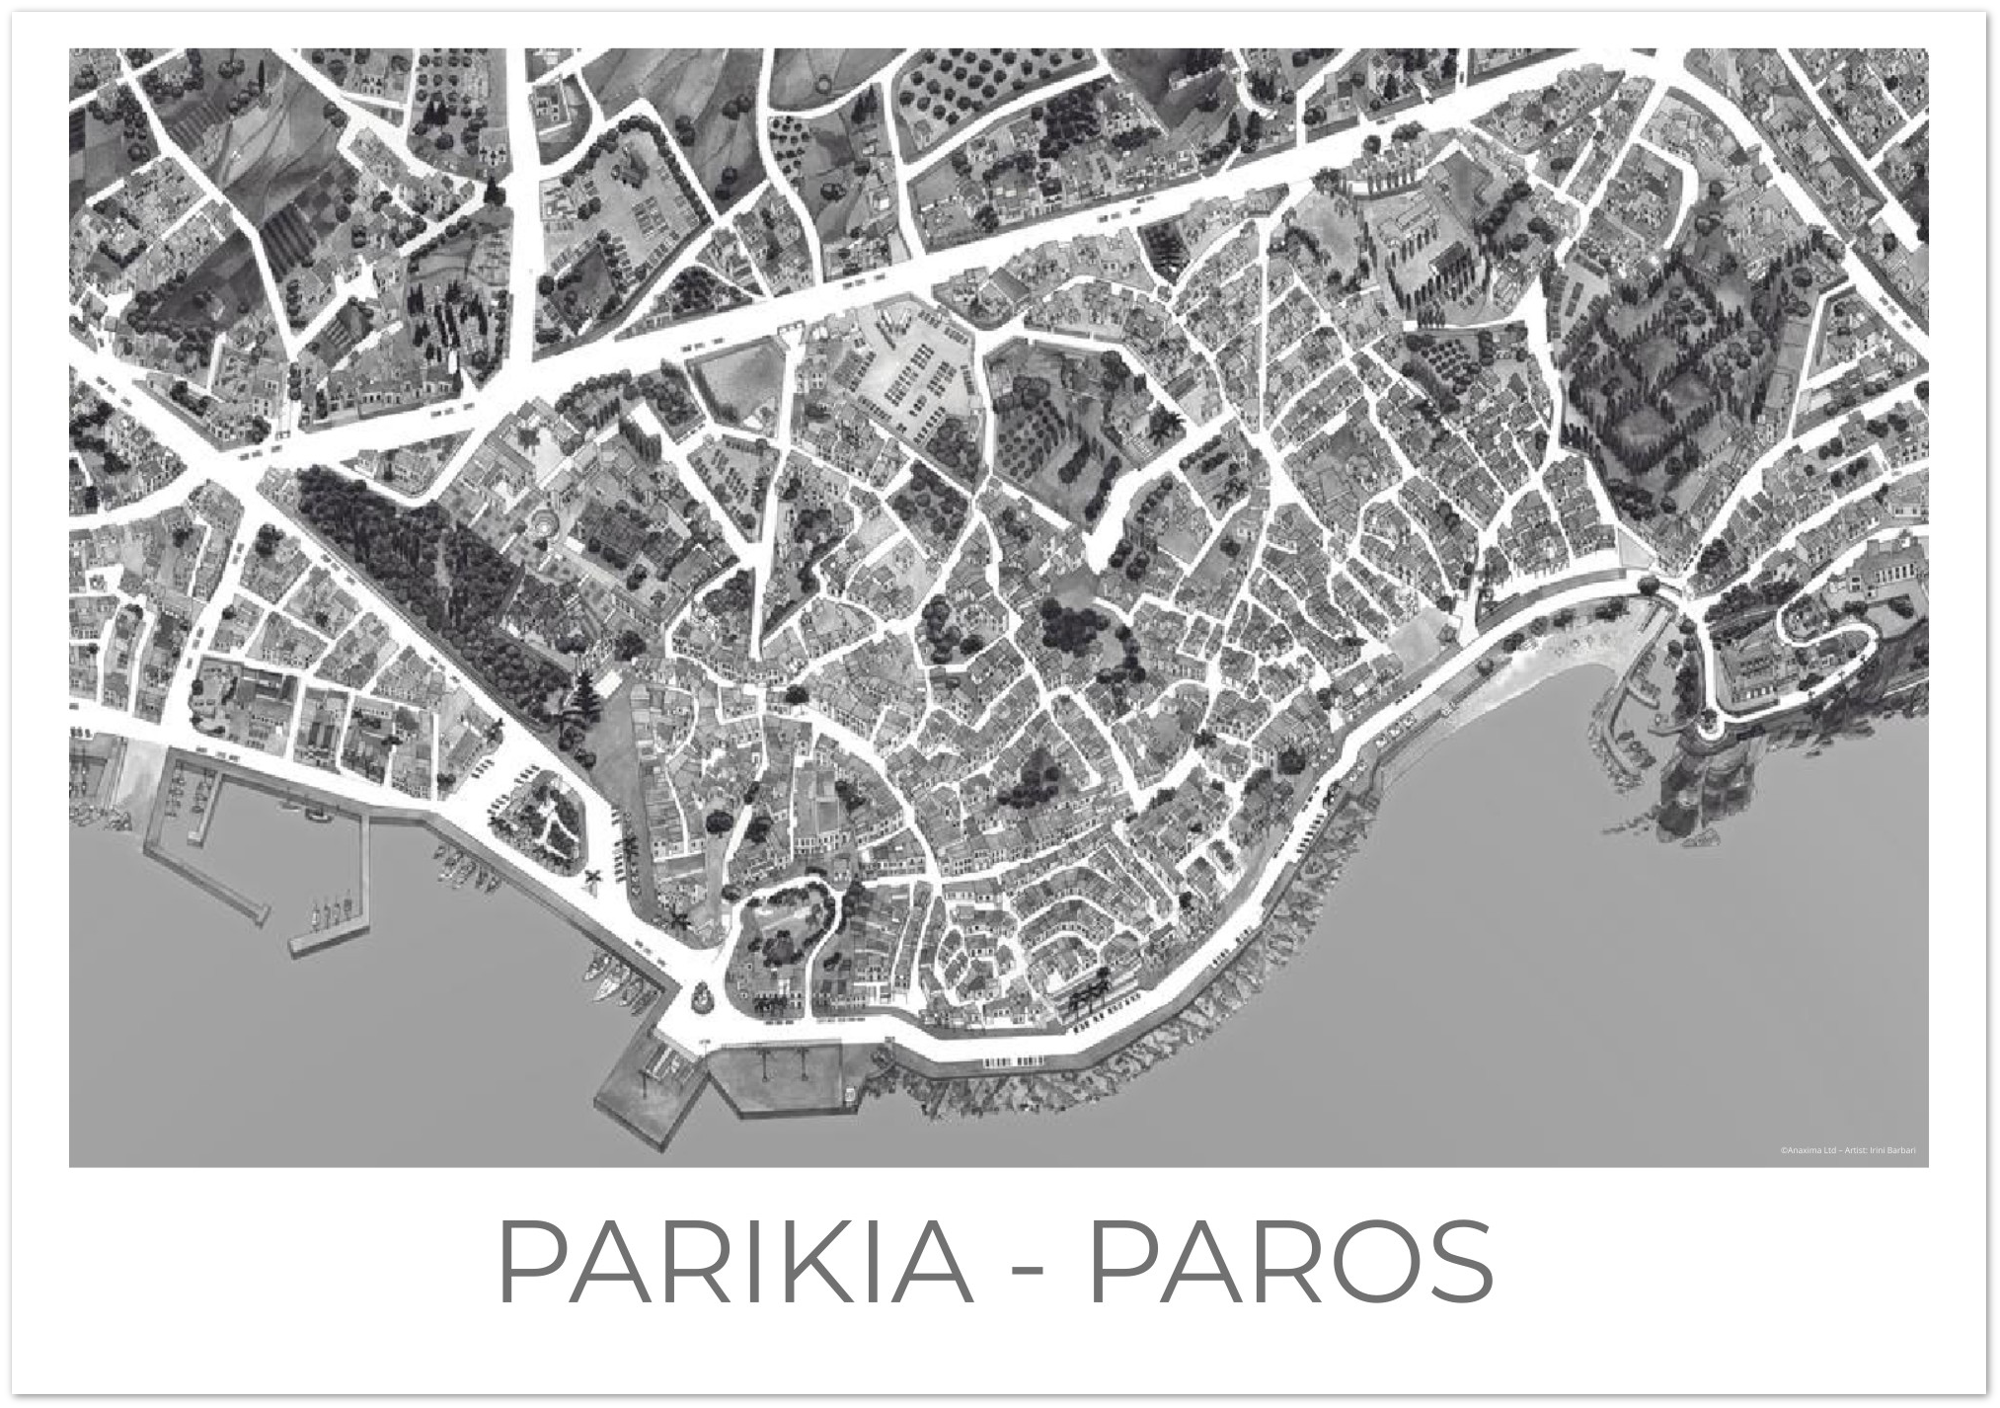 Parikia, Paros, Greece - Black & White - Premium Semi-Glossy Paper Poster